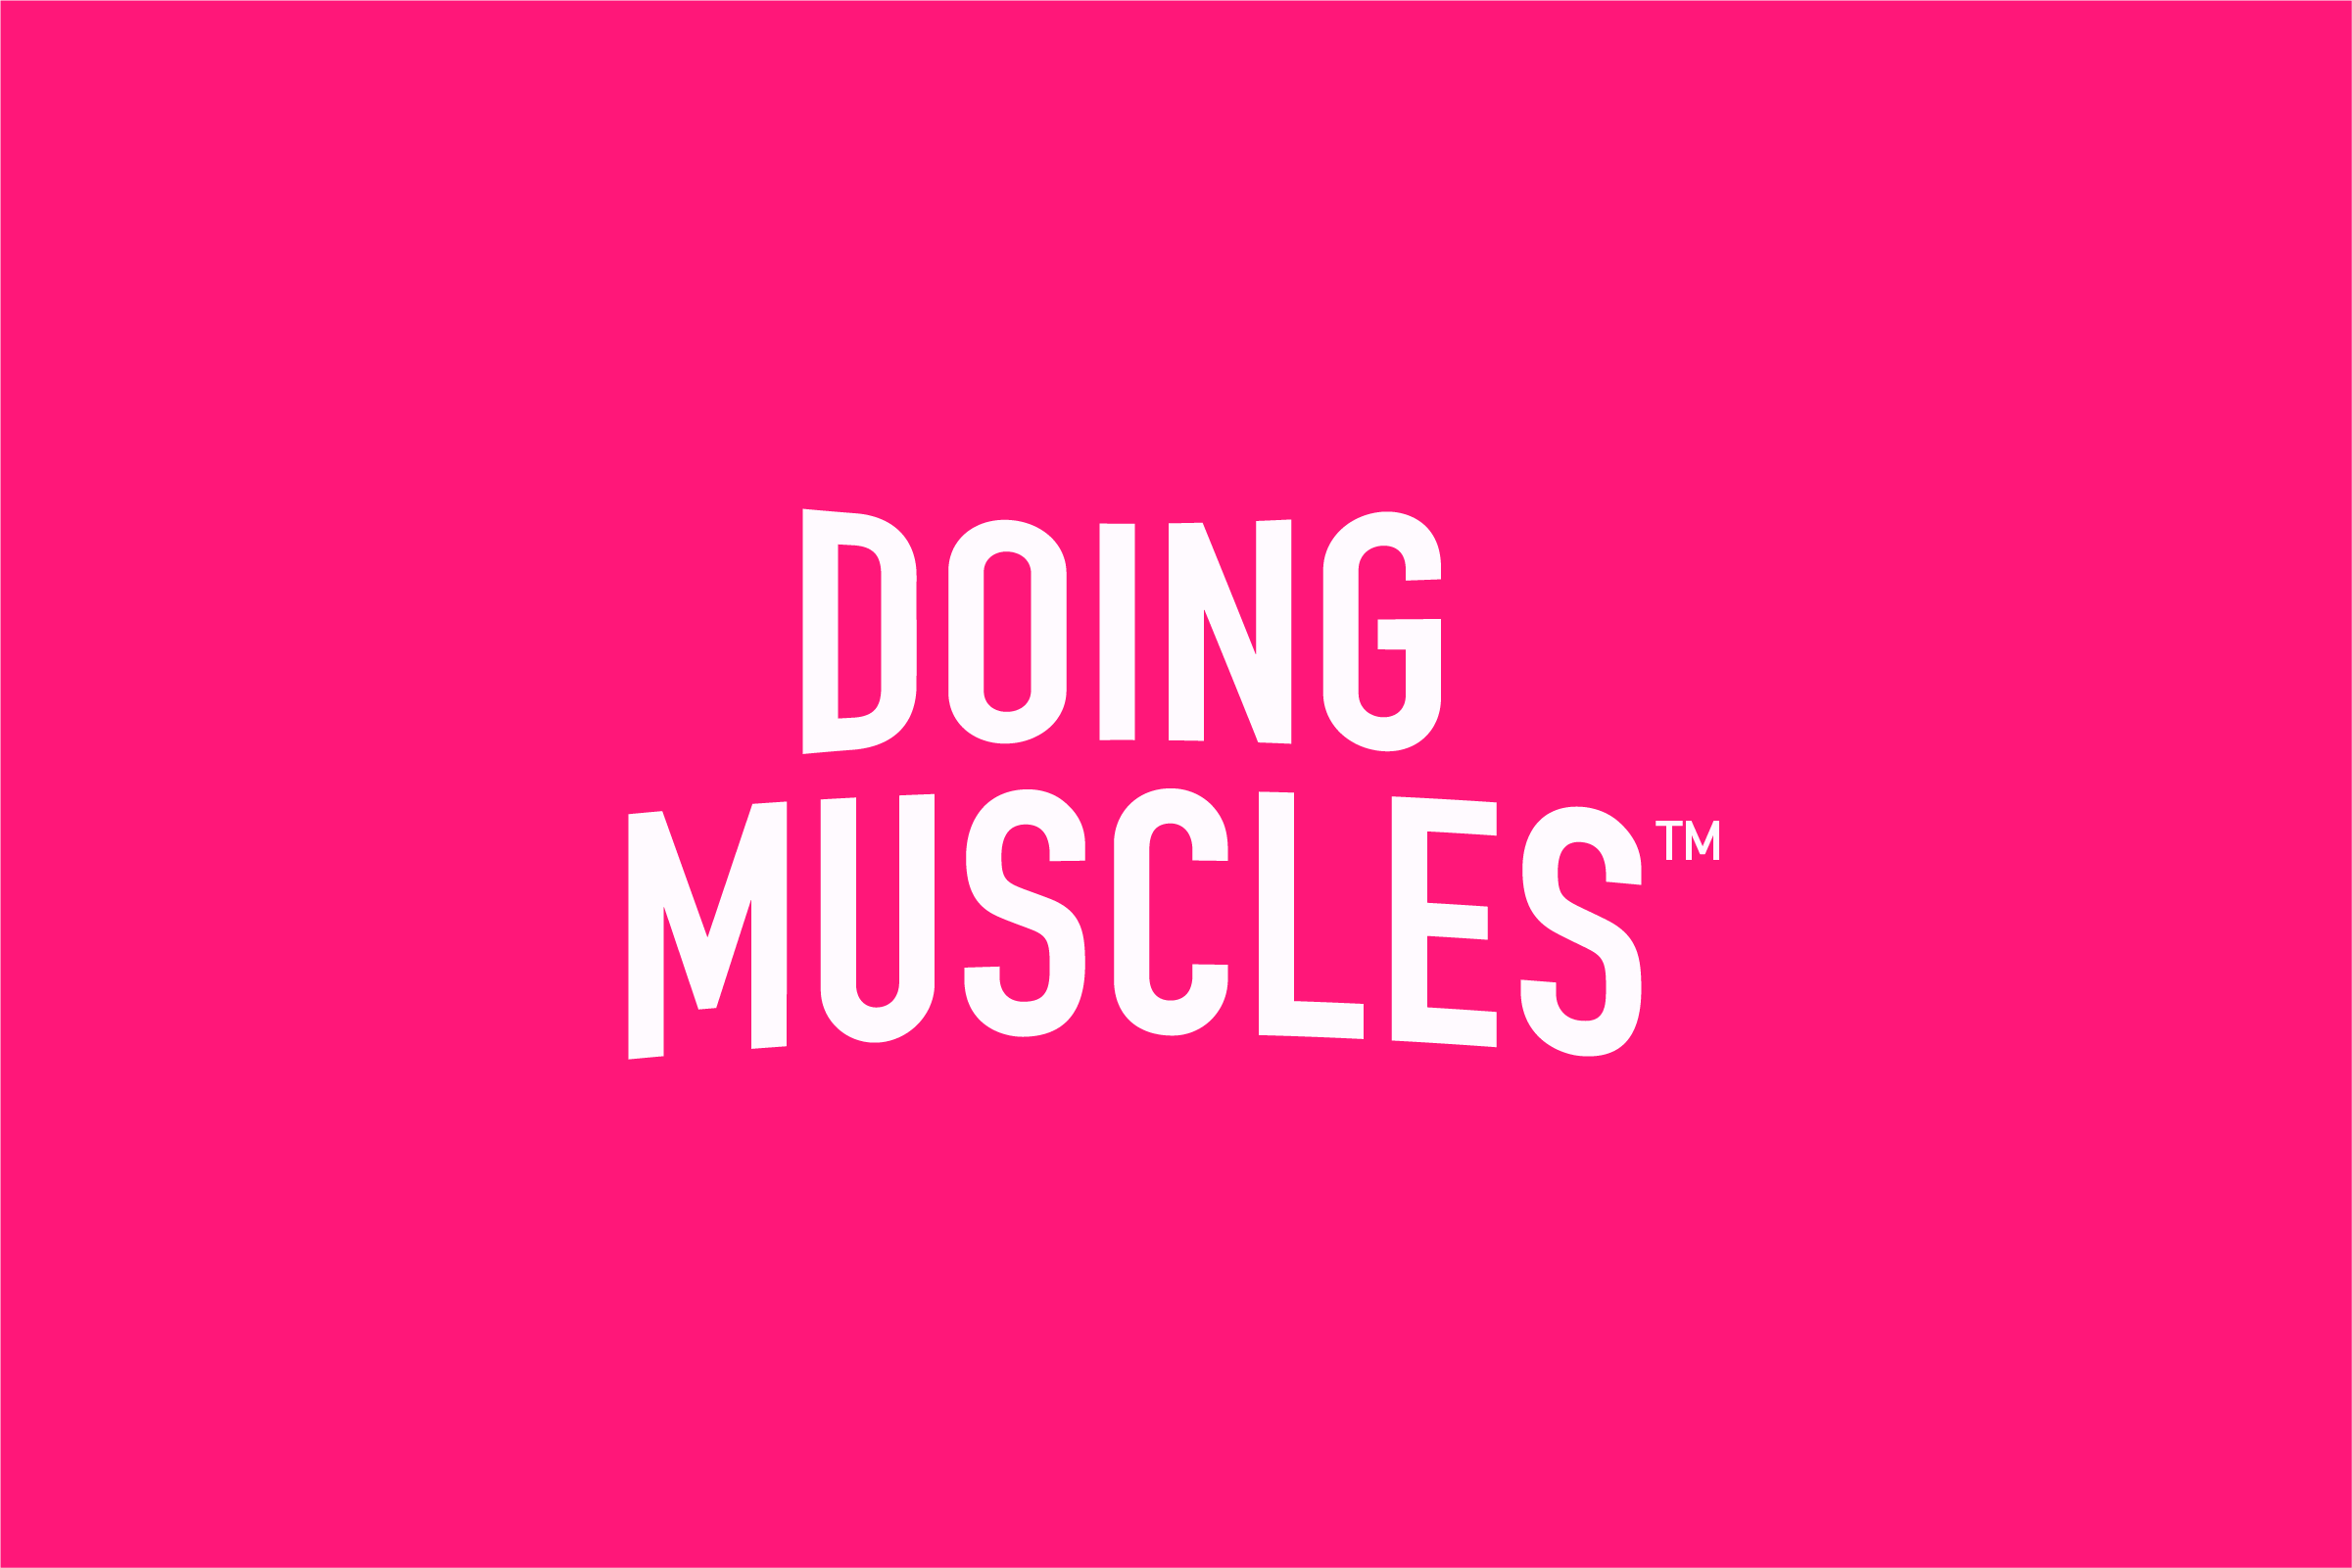 Doing Muscles - Doing LLC